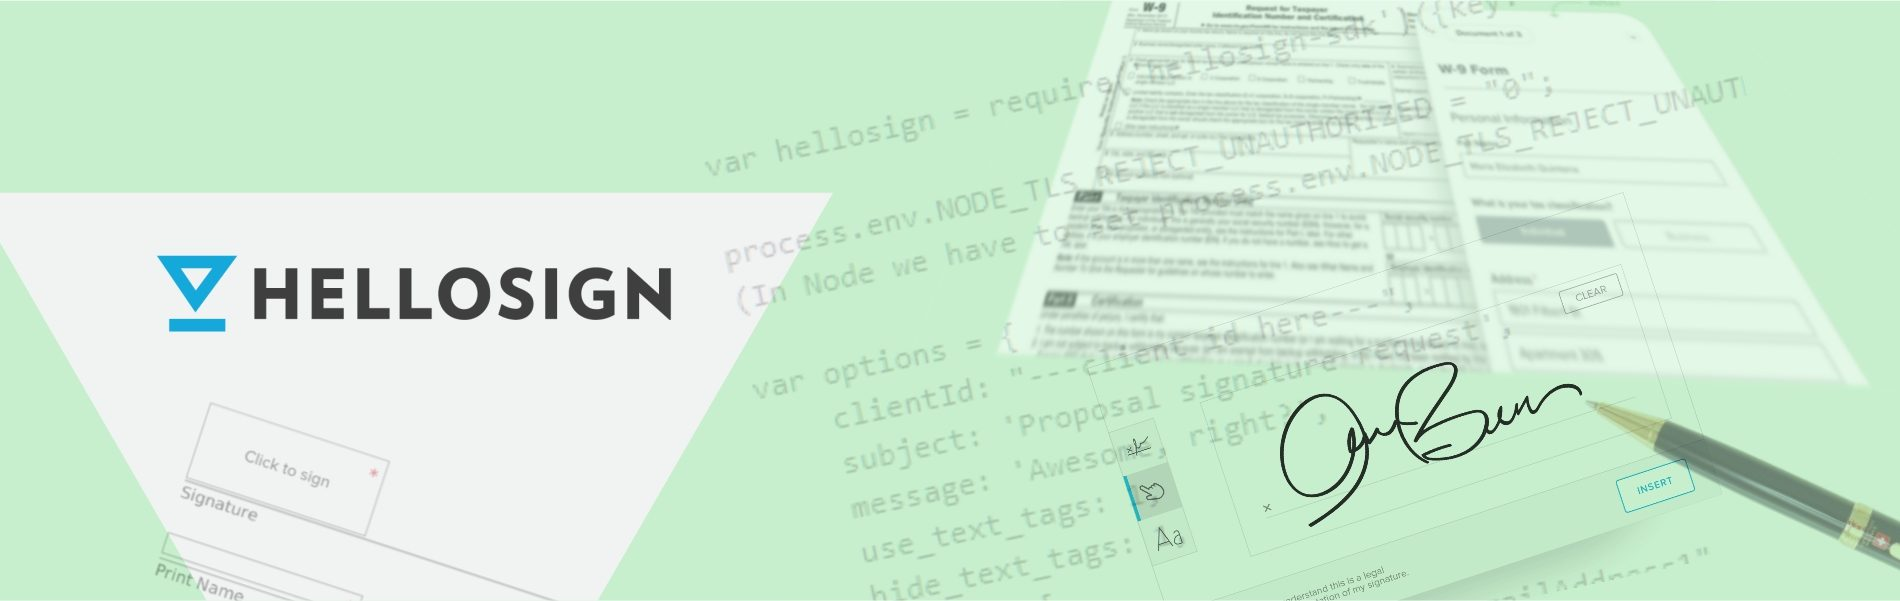 blog images-hellosign